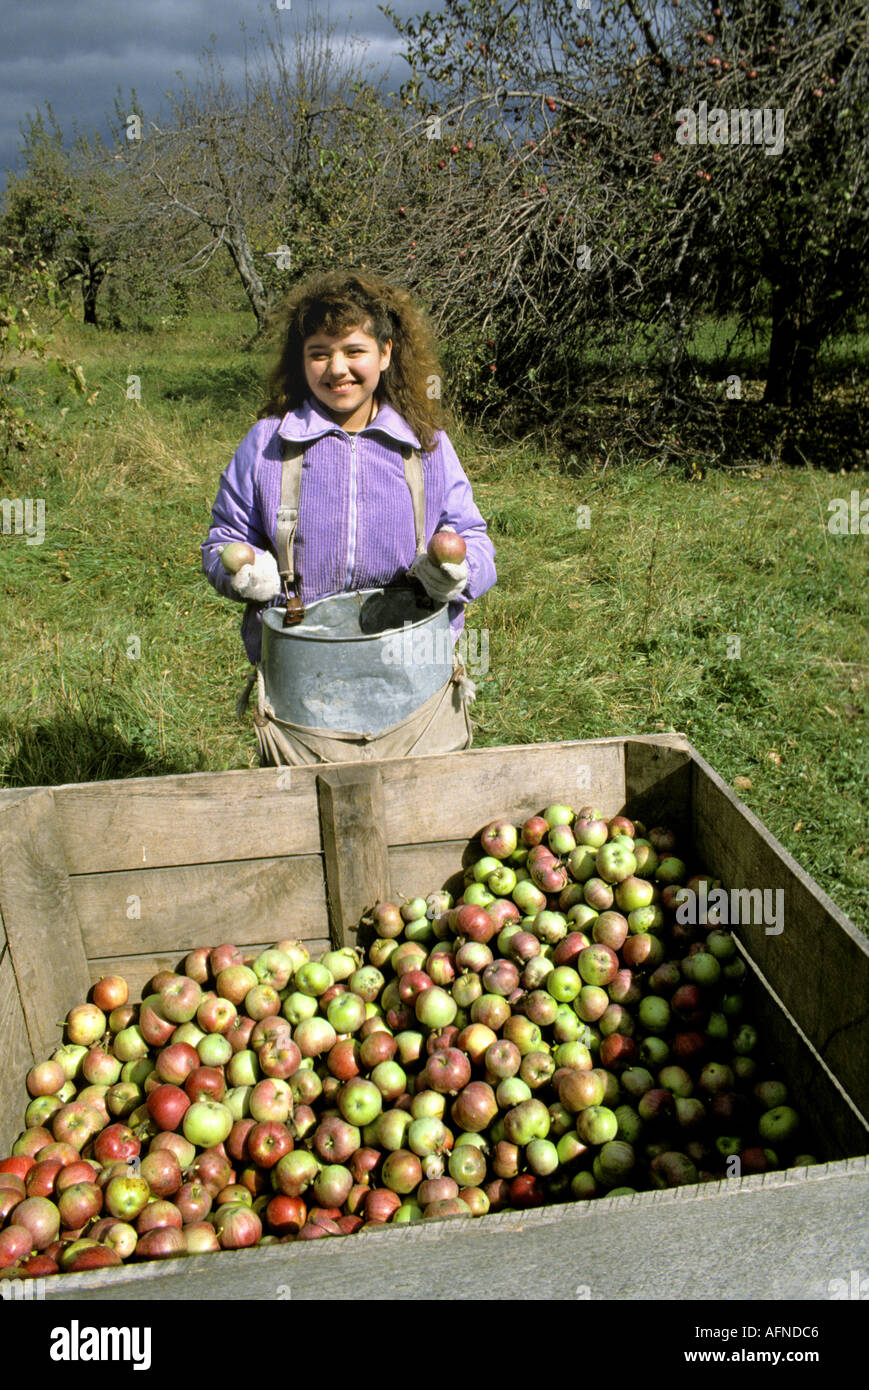 Mexican migrant worker picks apples during fall autumn harvest in Port Huron Michigan orchard - Stock Image